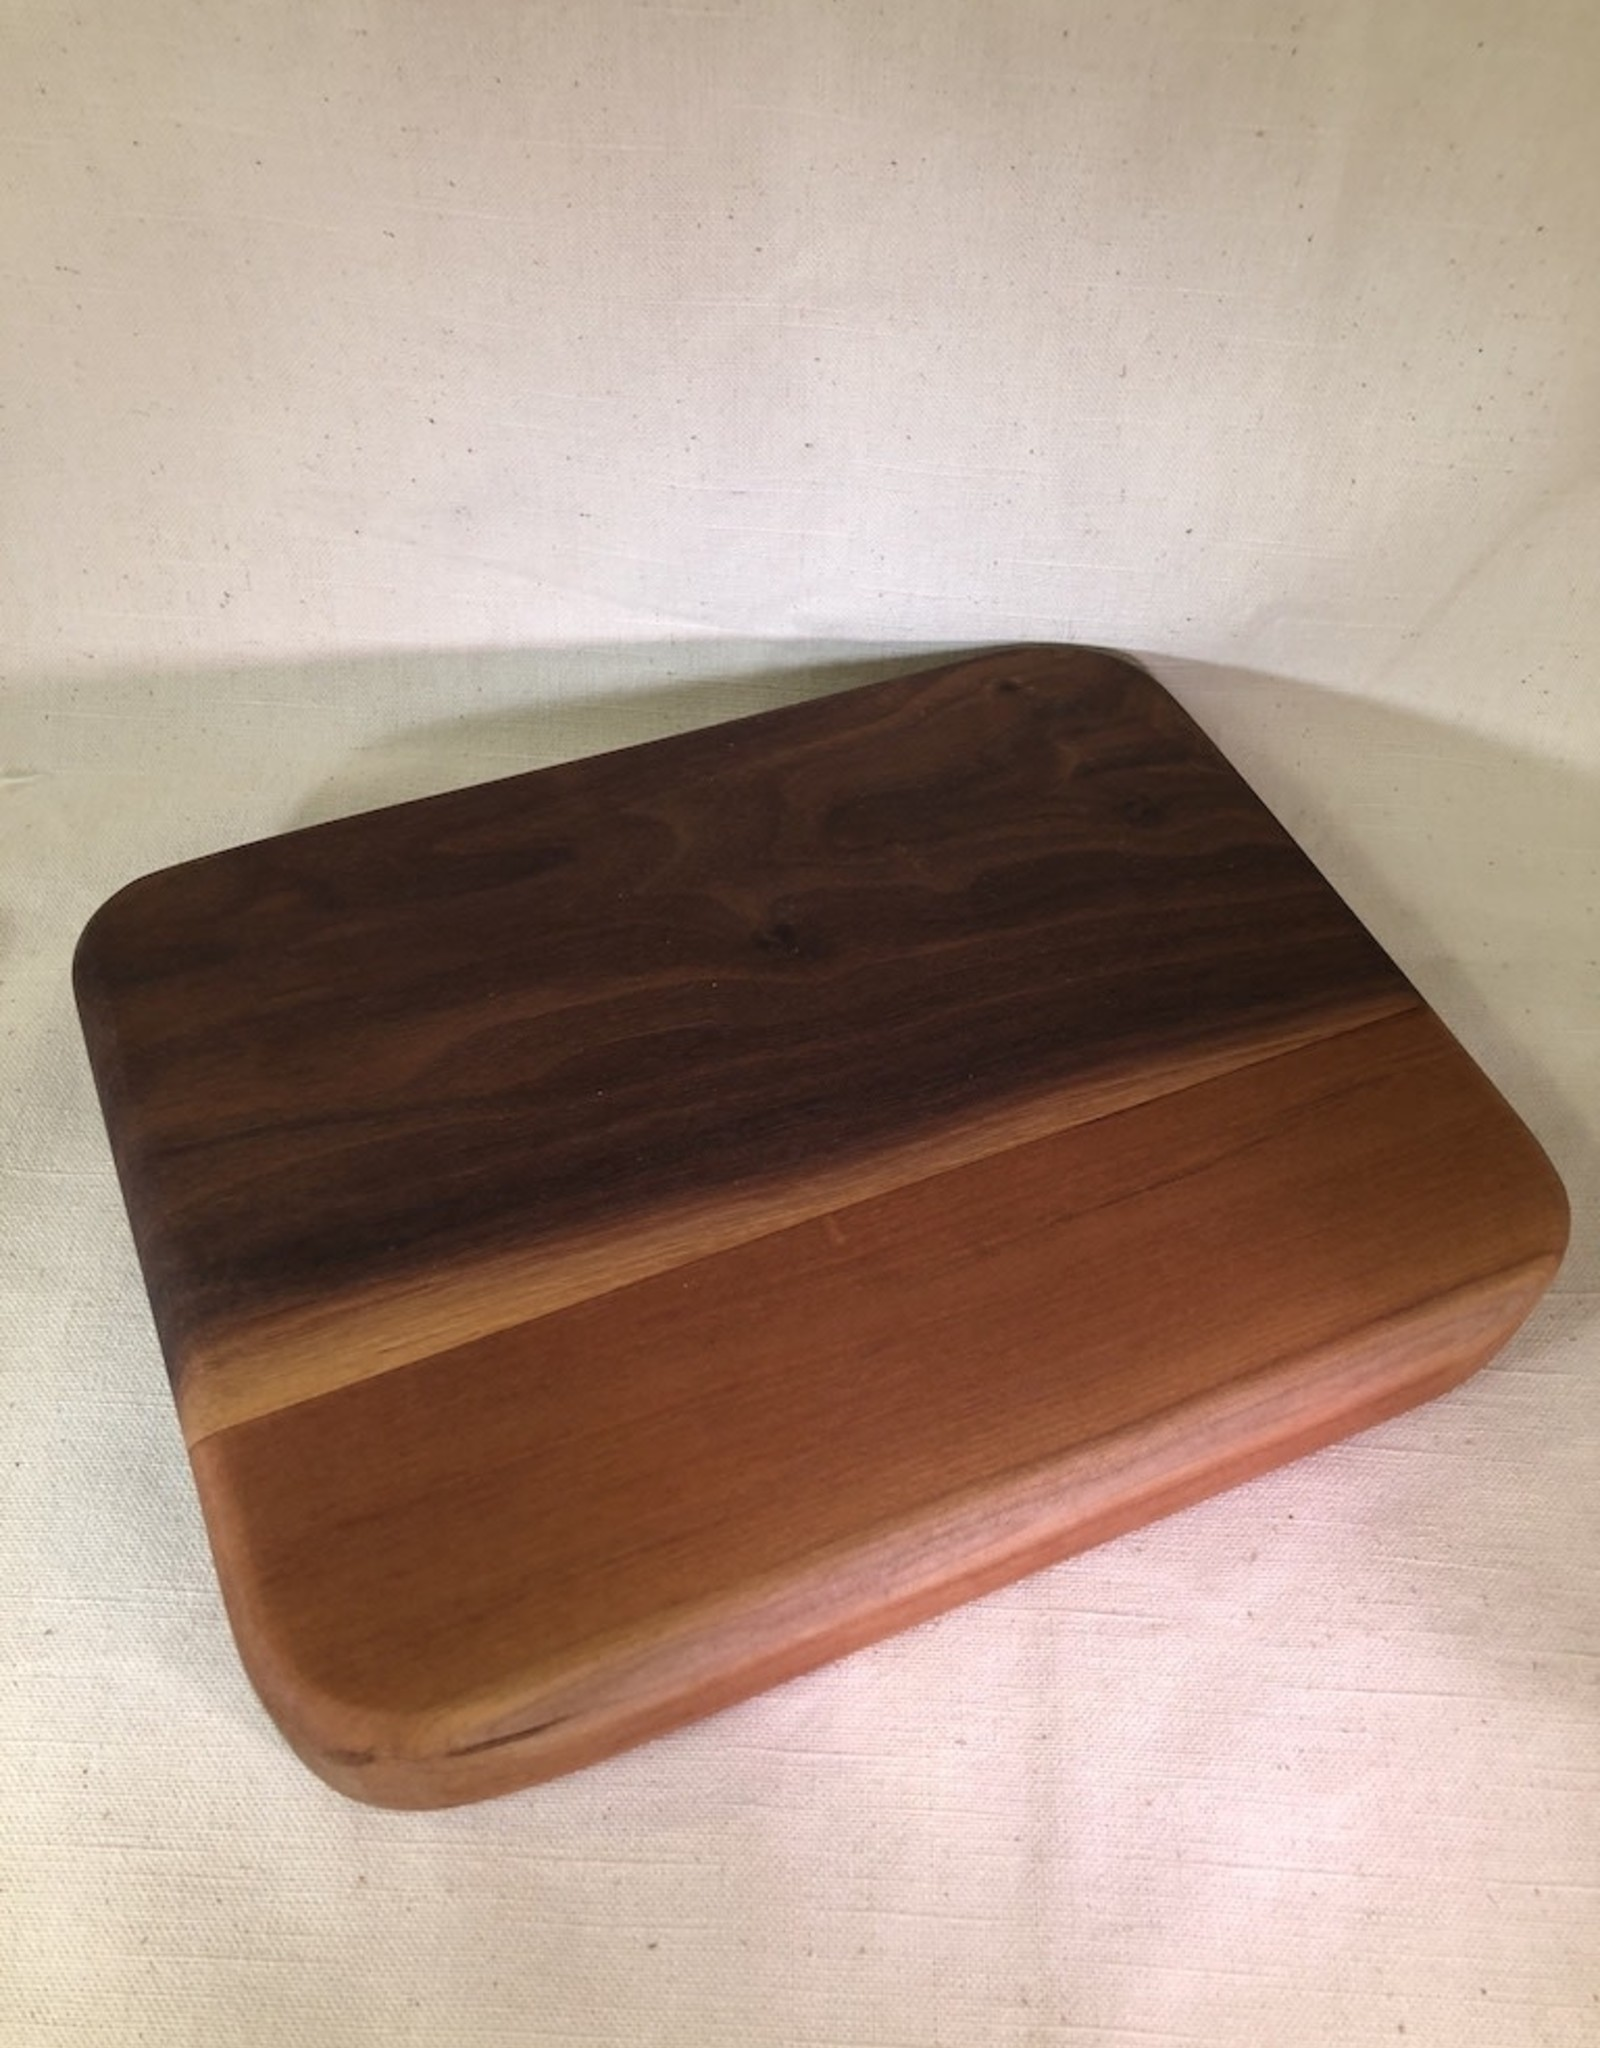 Walnut and Cherry Cutting Board #1